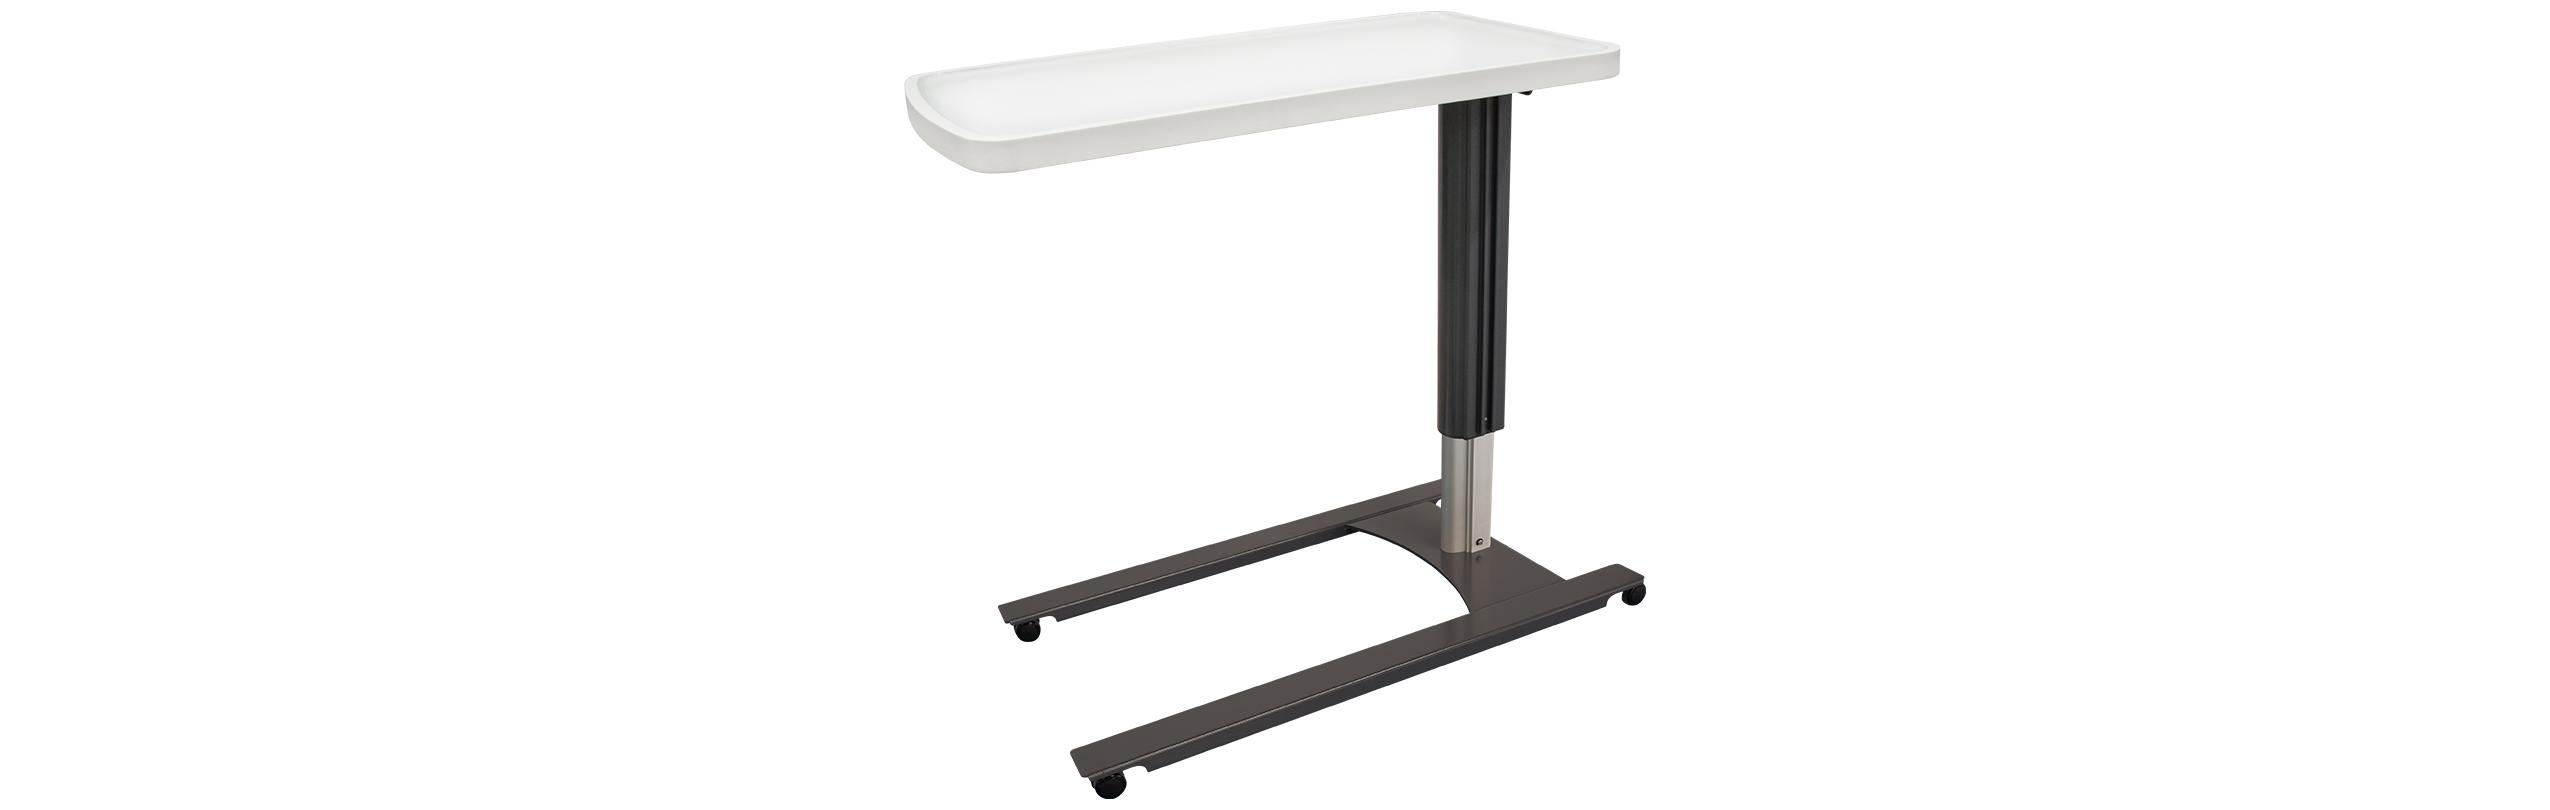 scientific com medline dp amazon industrial table standard overbed